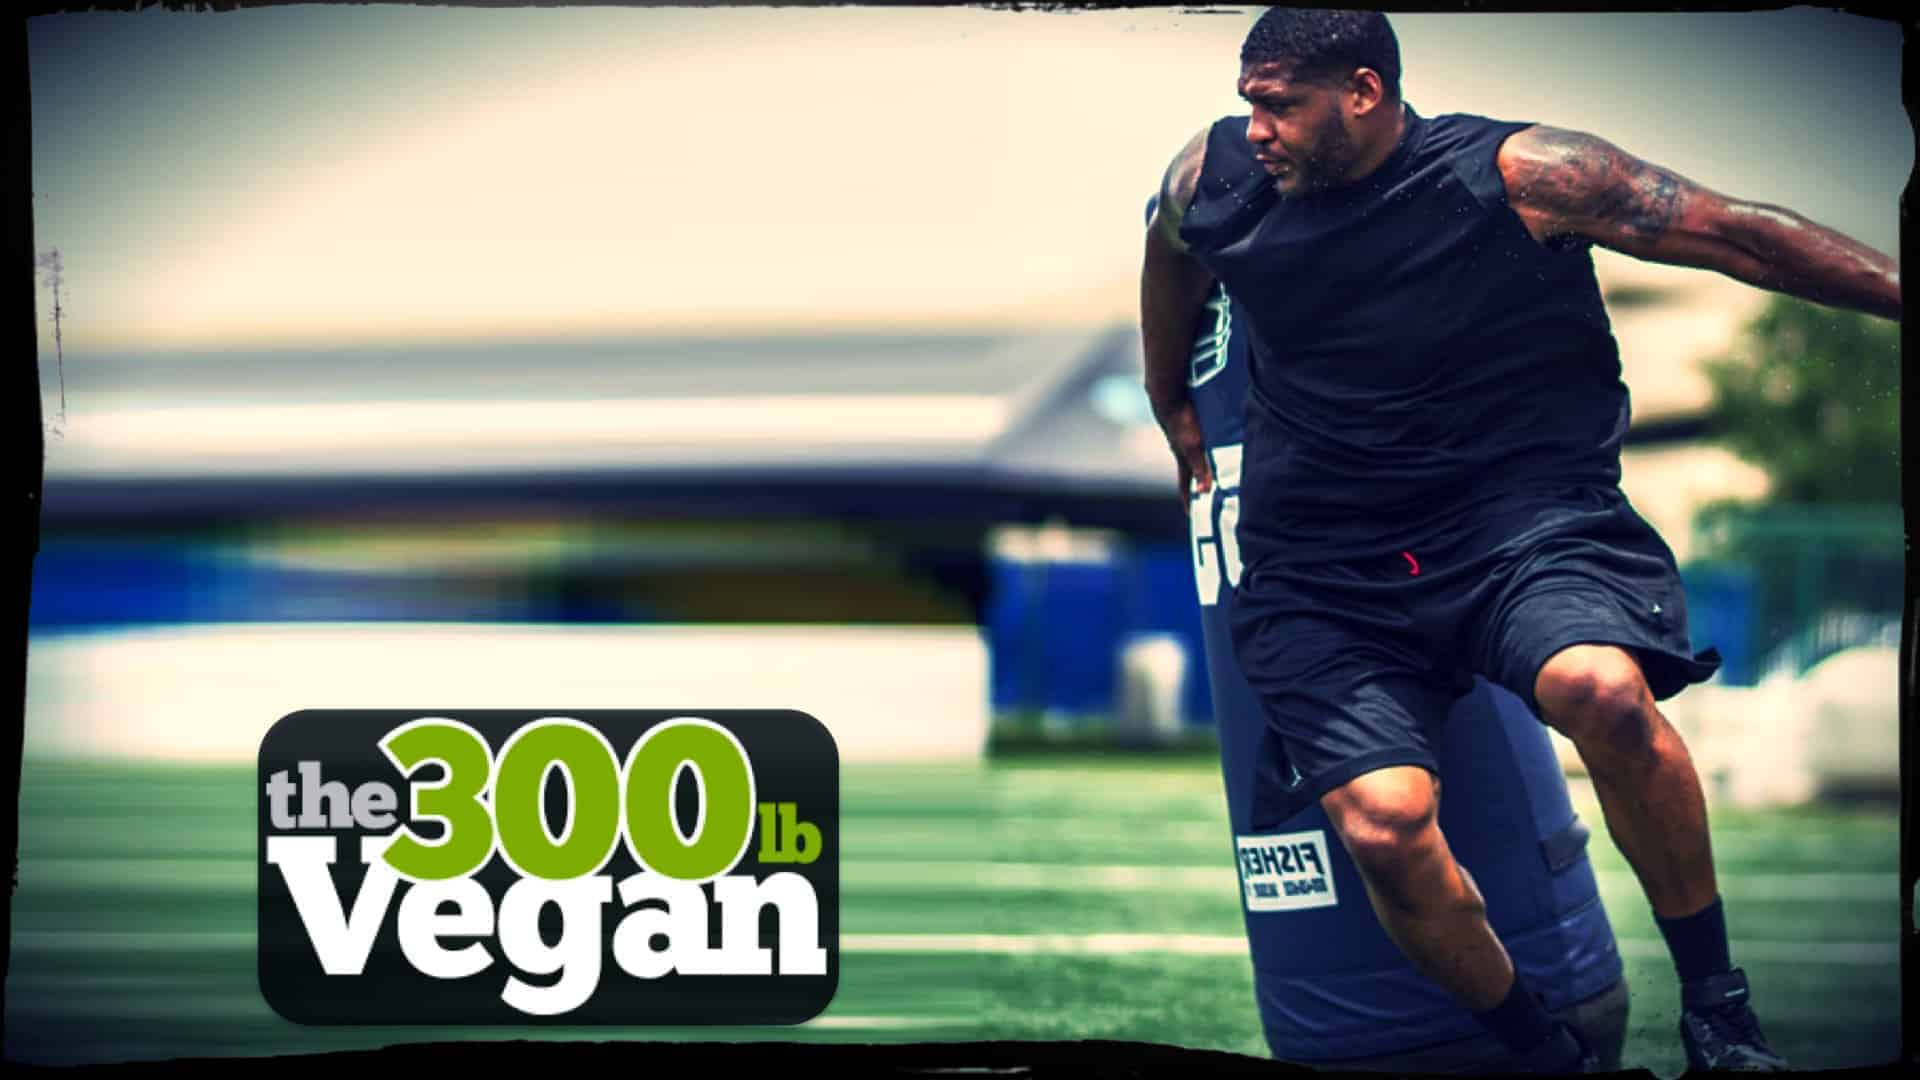 """Defensive lineman David Carter is shown in training skimming past a tackle dummy. In a lower left inset the words """"The 300 pound Vegan"""" are displayed."""